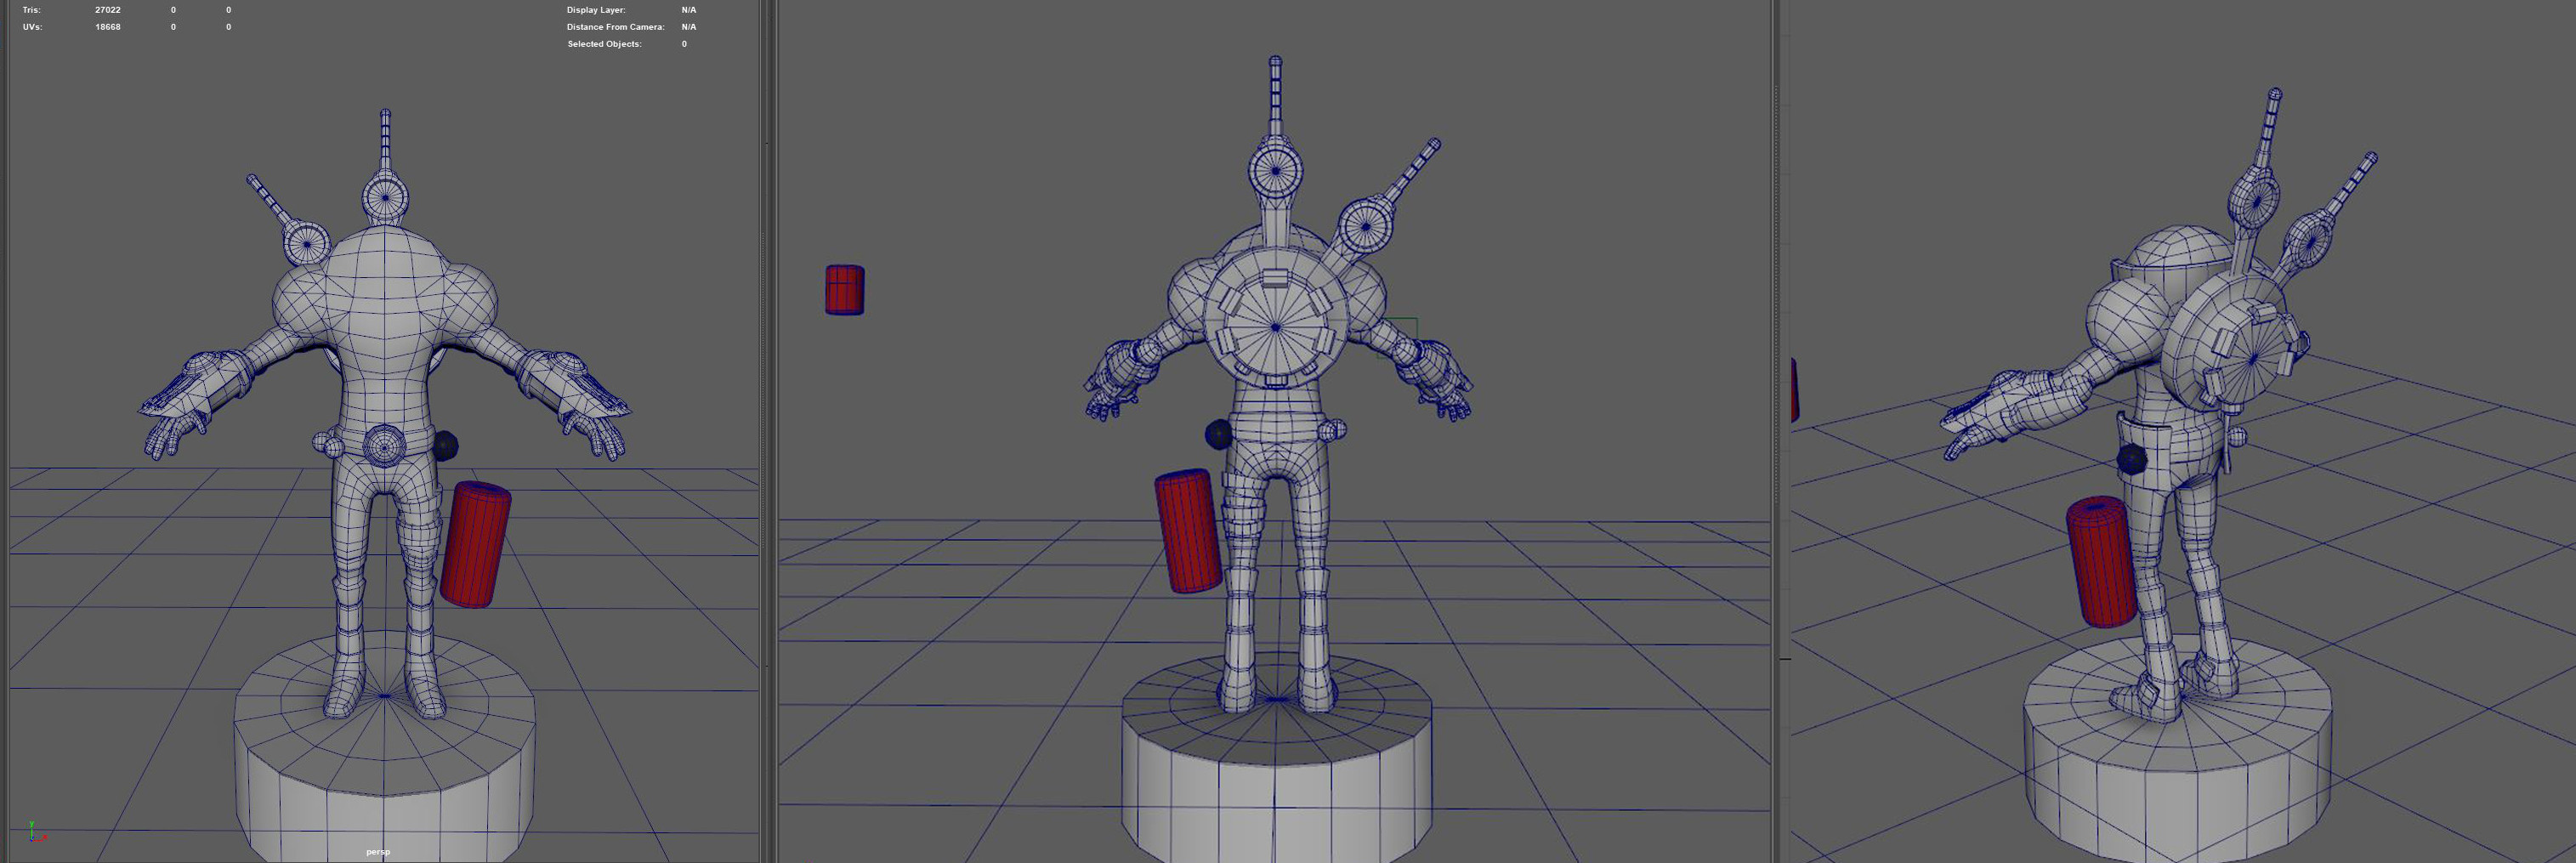 base character (version 2.0) + wireframe